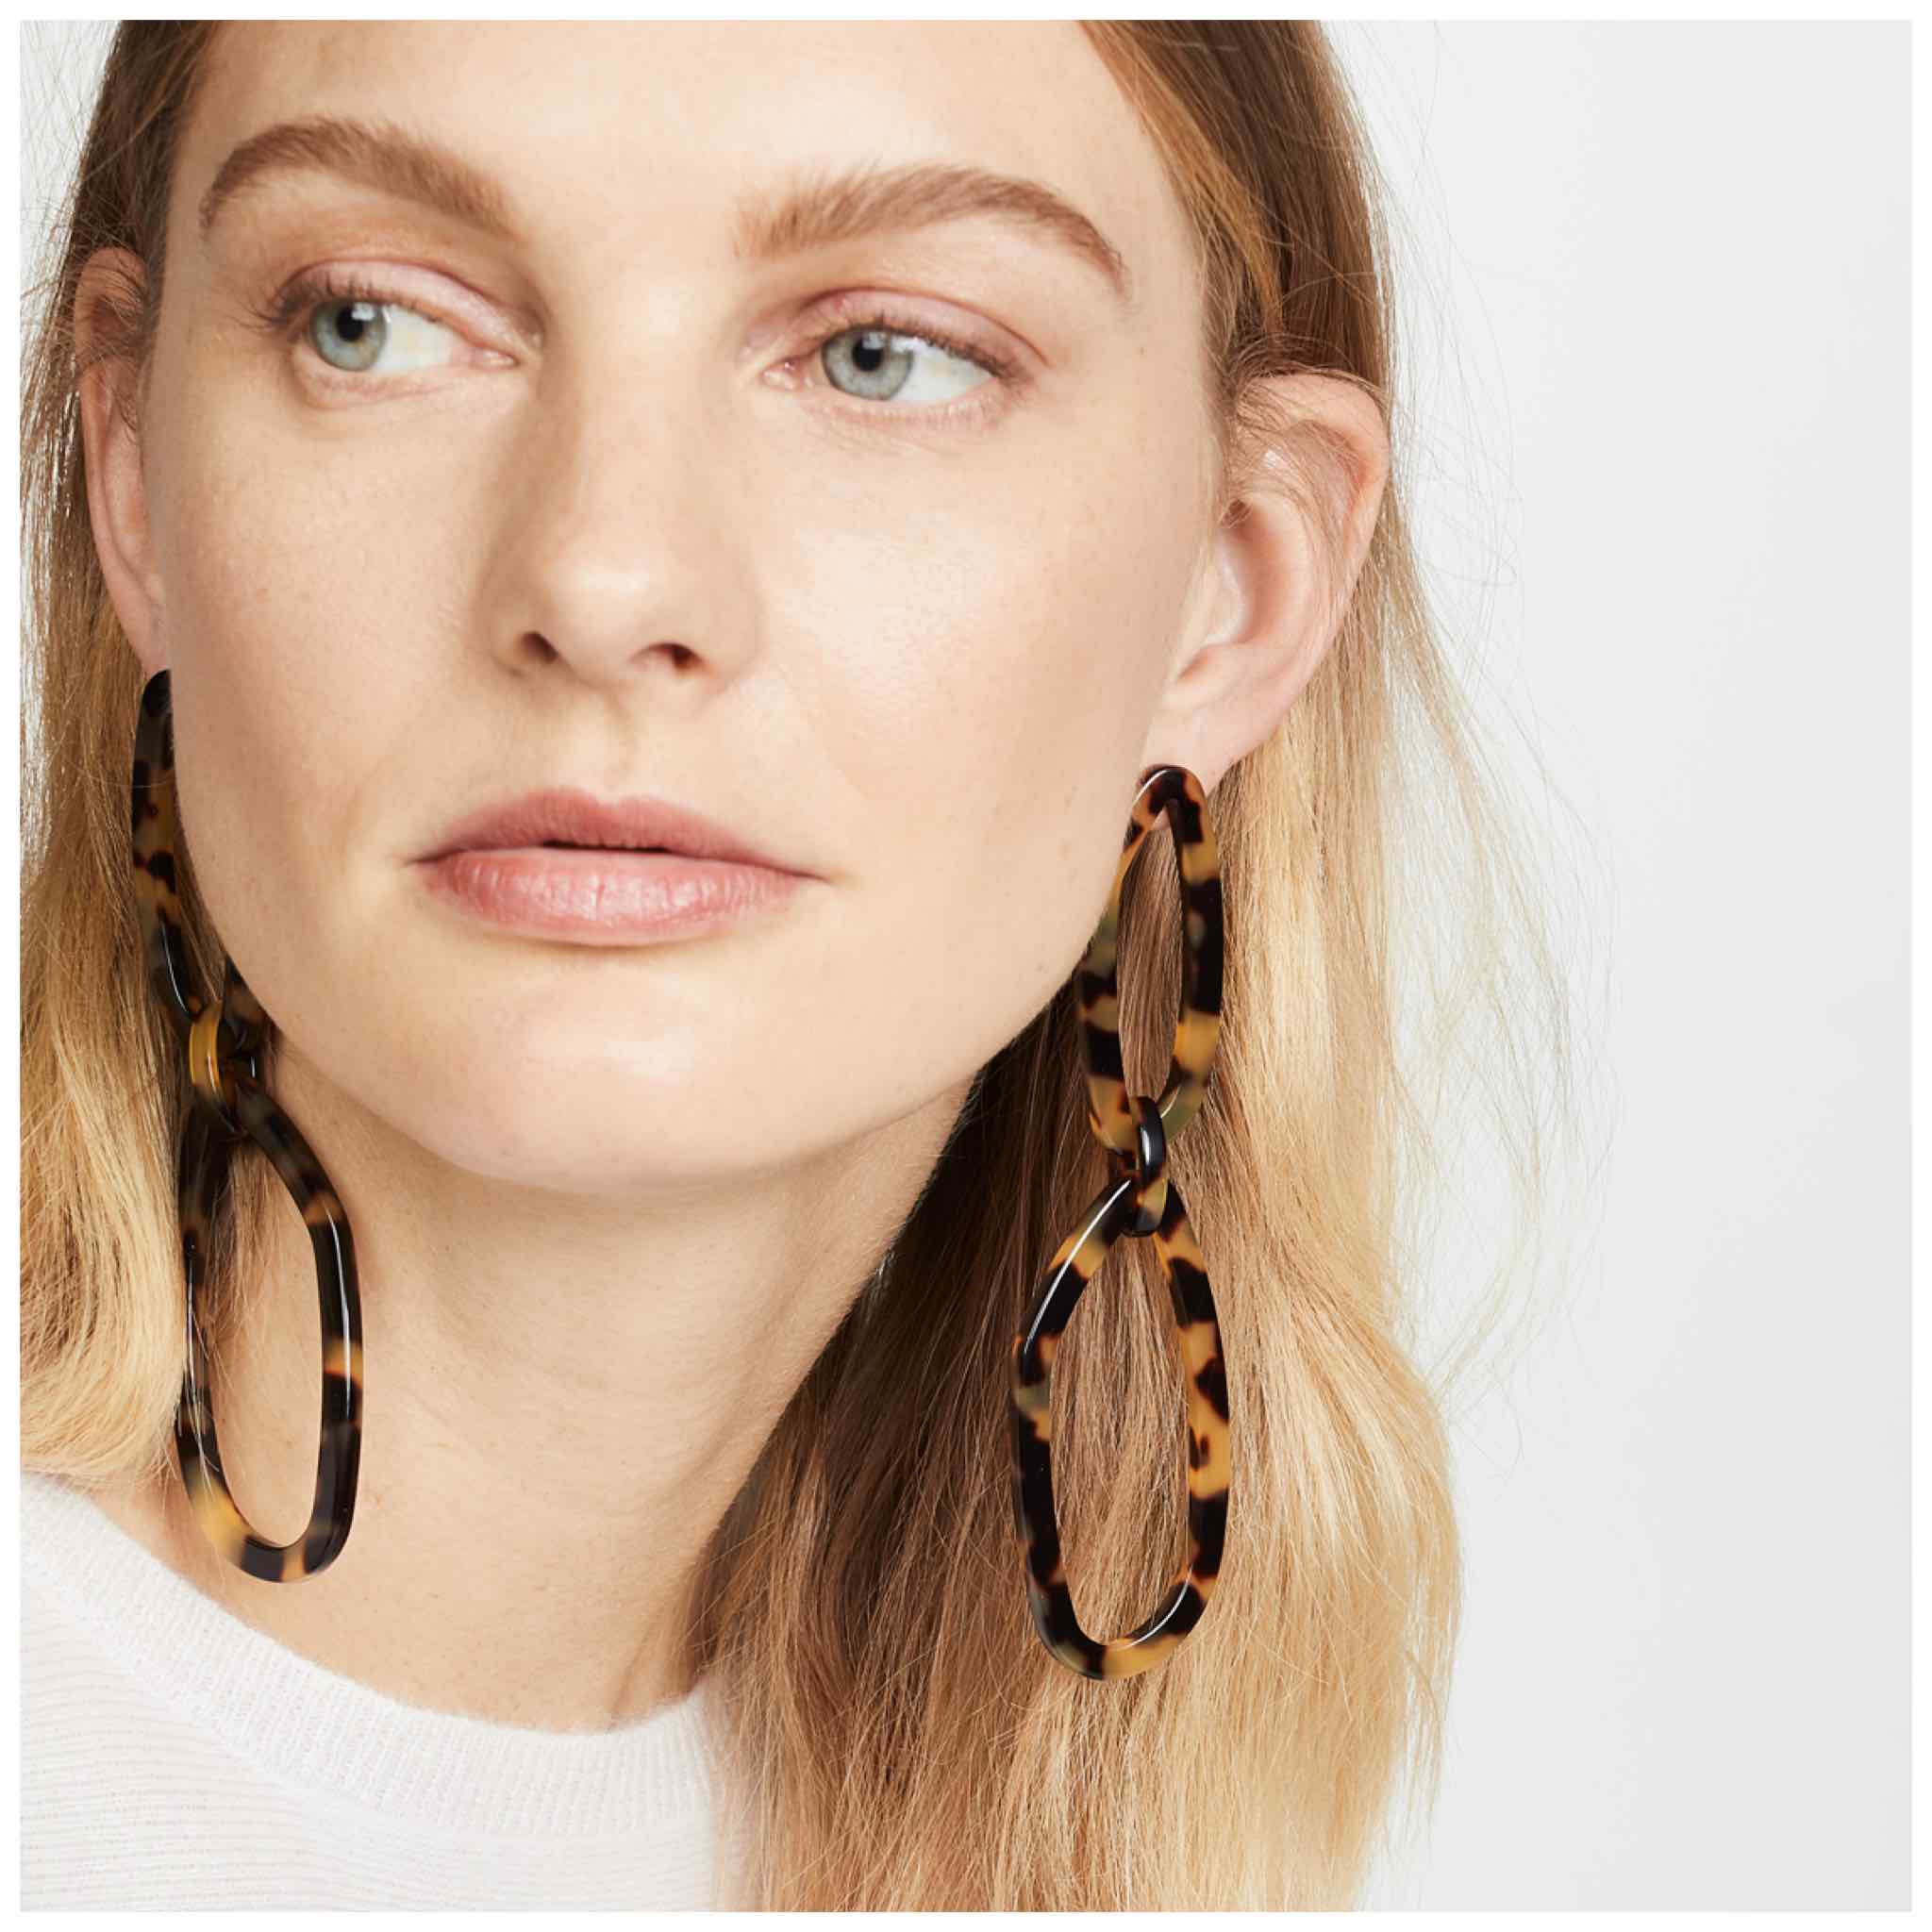 Tortoise shell earrings are THE jewelry trend of the year & we know why: they're an easy outfit upgrade for any style. Our top 10 pairs are right here!